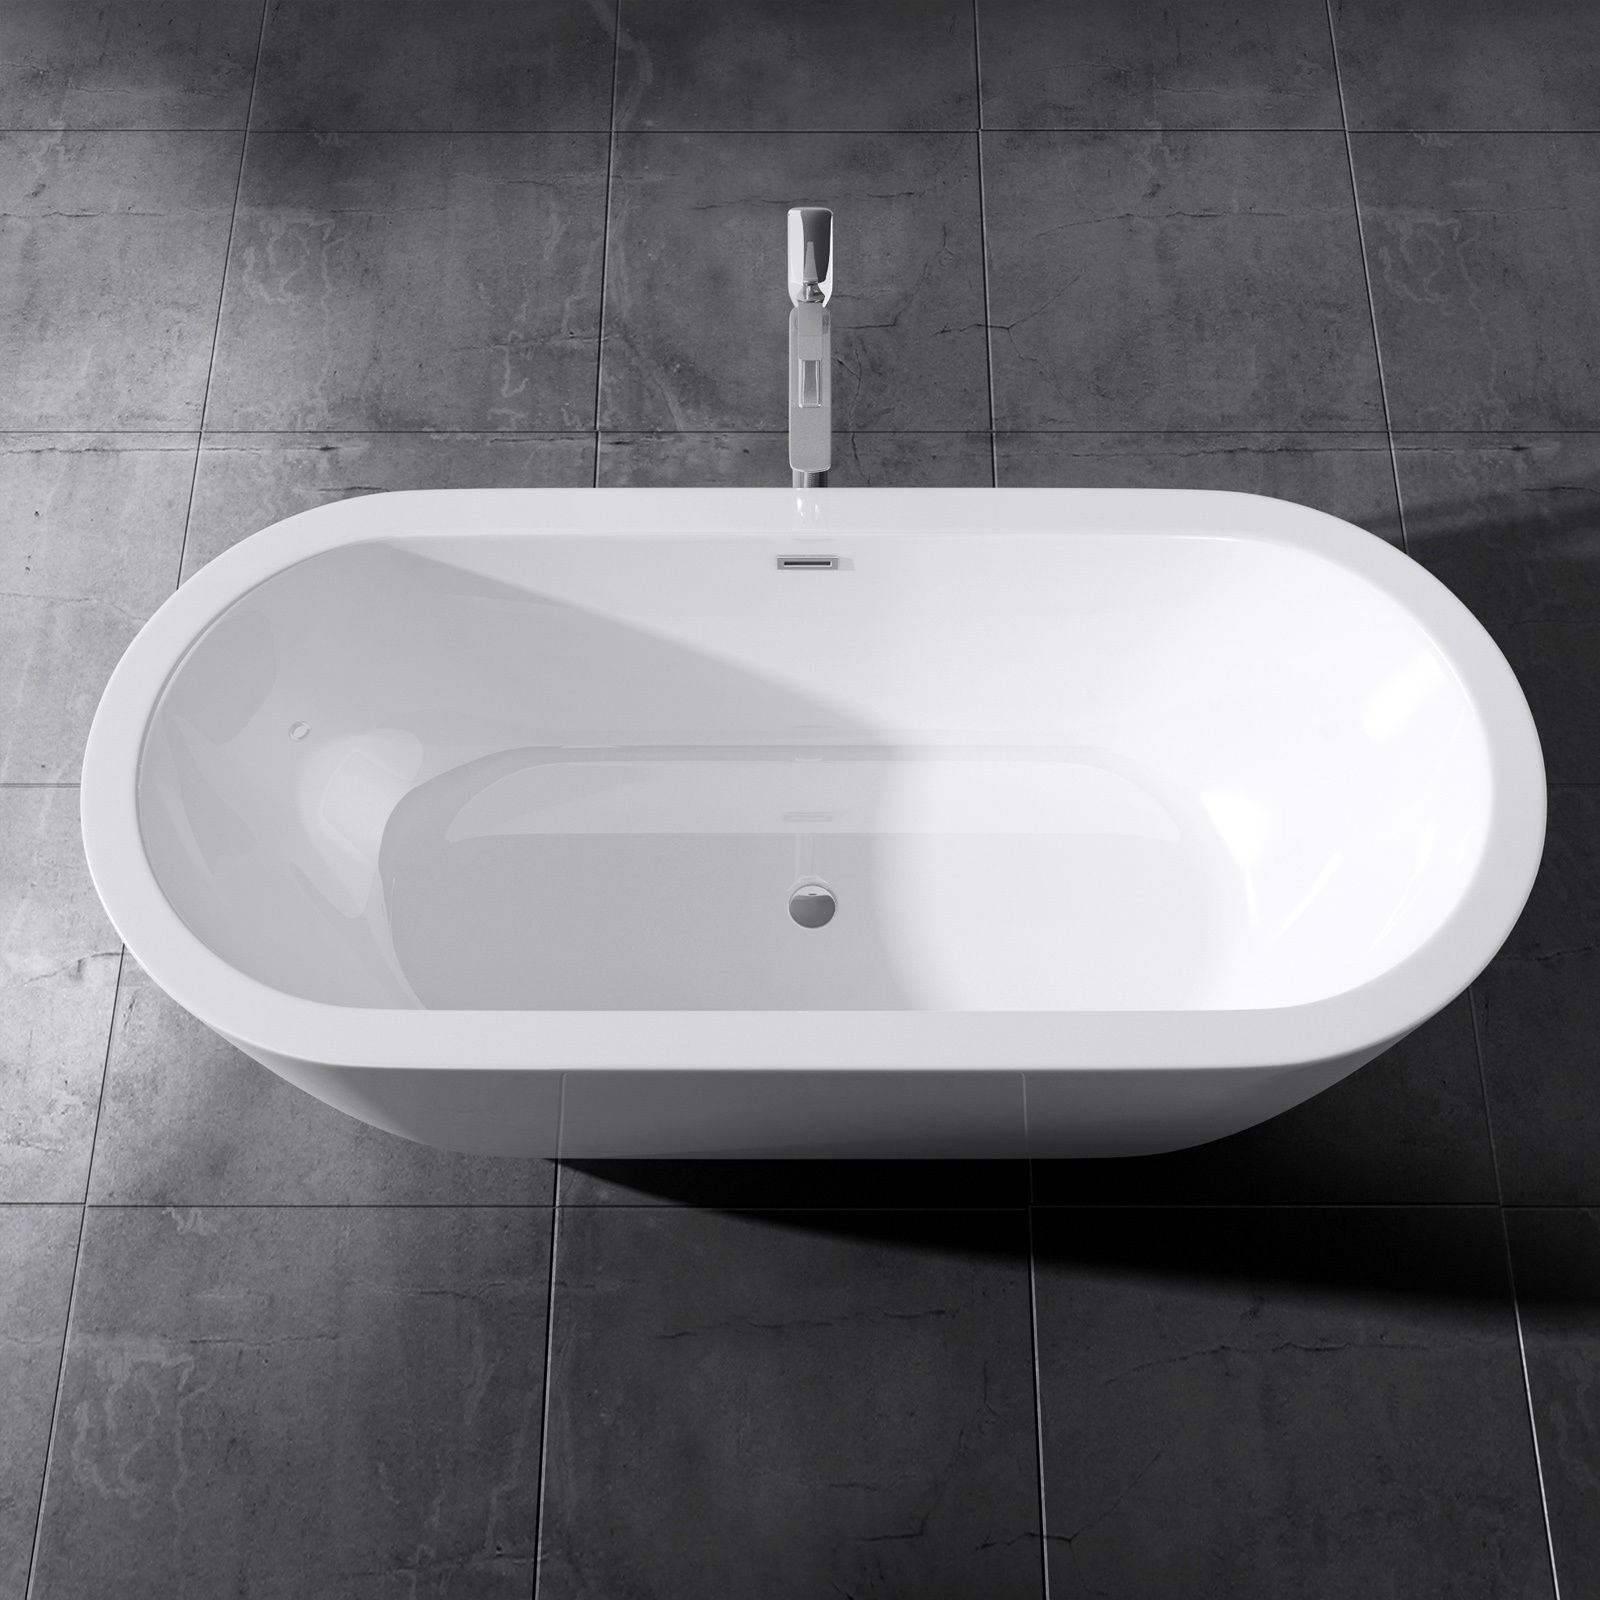 Durovin Square Double Ended Freestanding Bath Tub Acrylic White ...